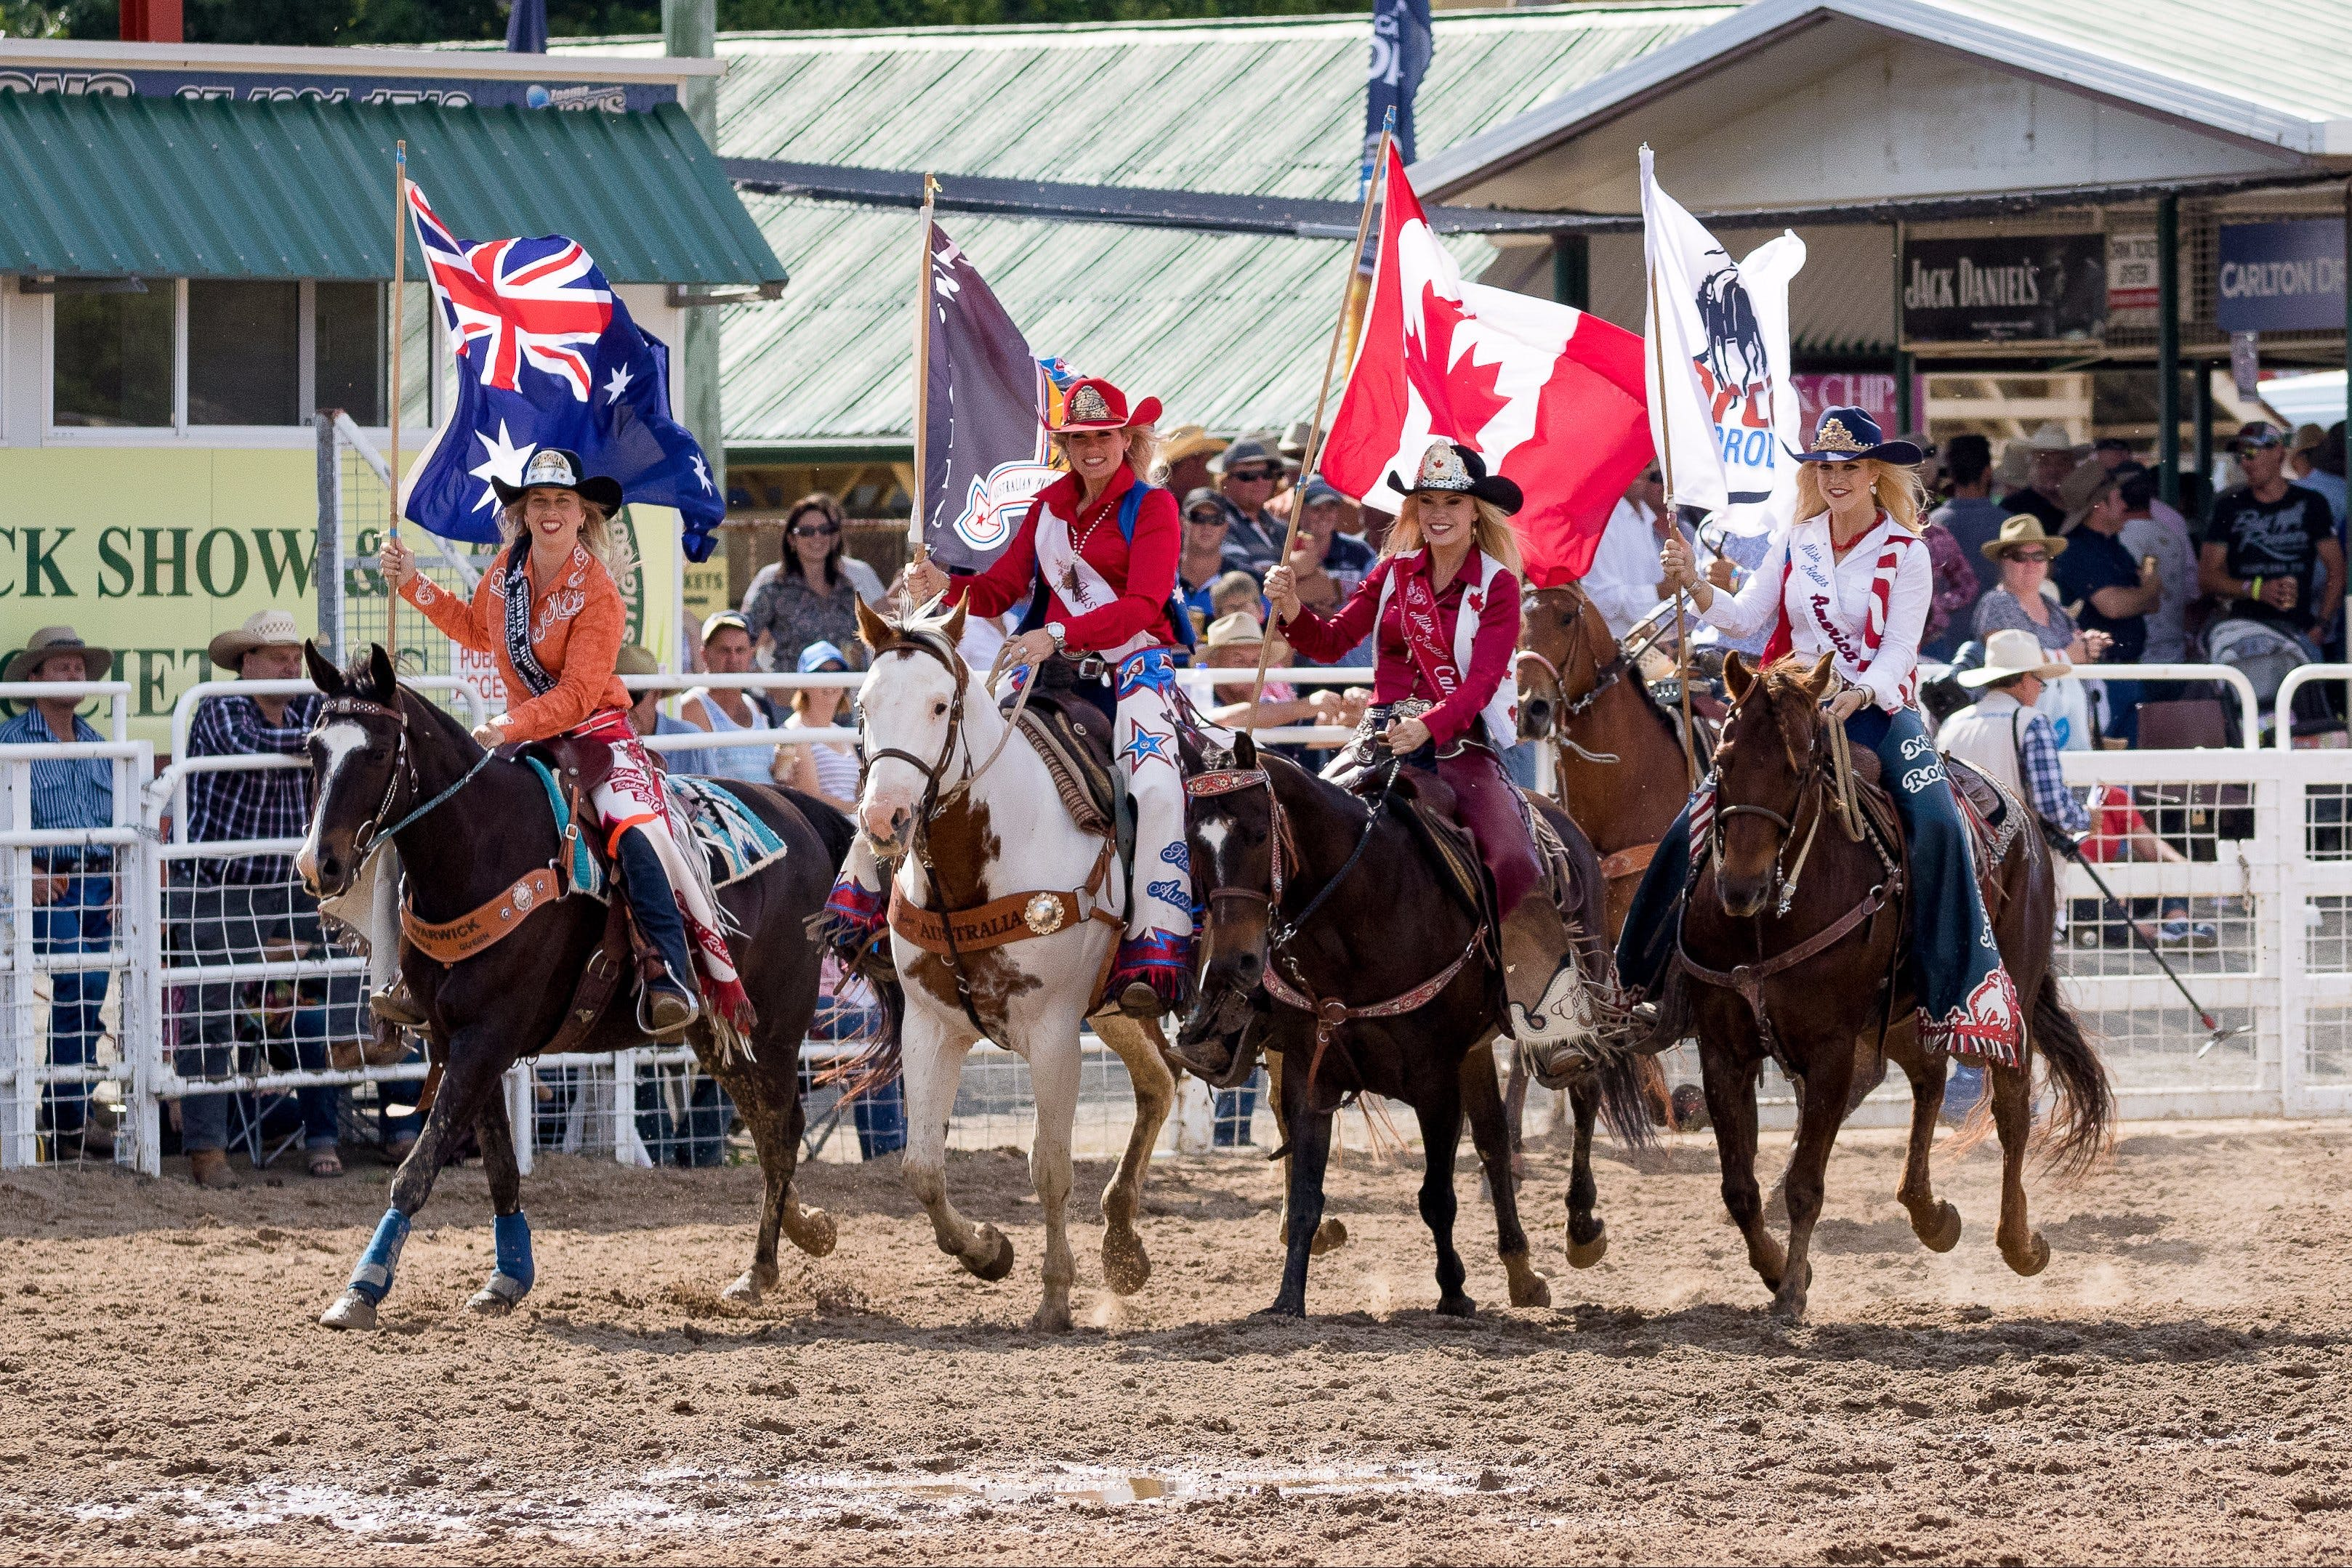 Warwick Rodeo National APRA National Finals and Warwick Gold Cup Campdraft